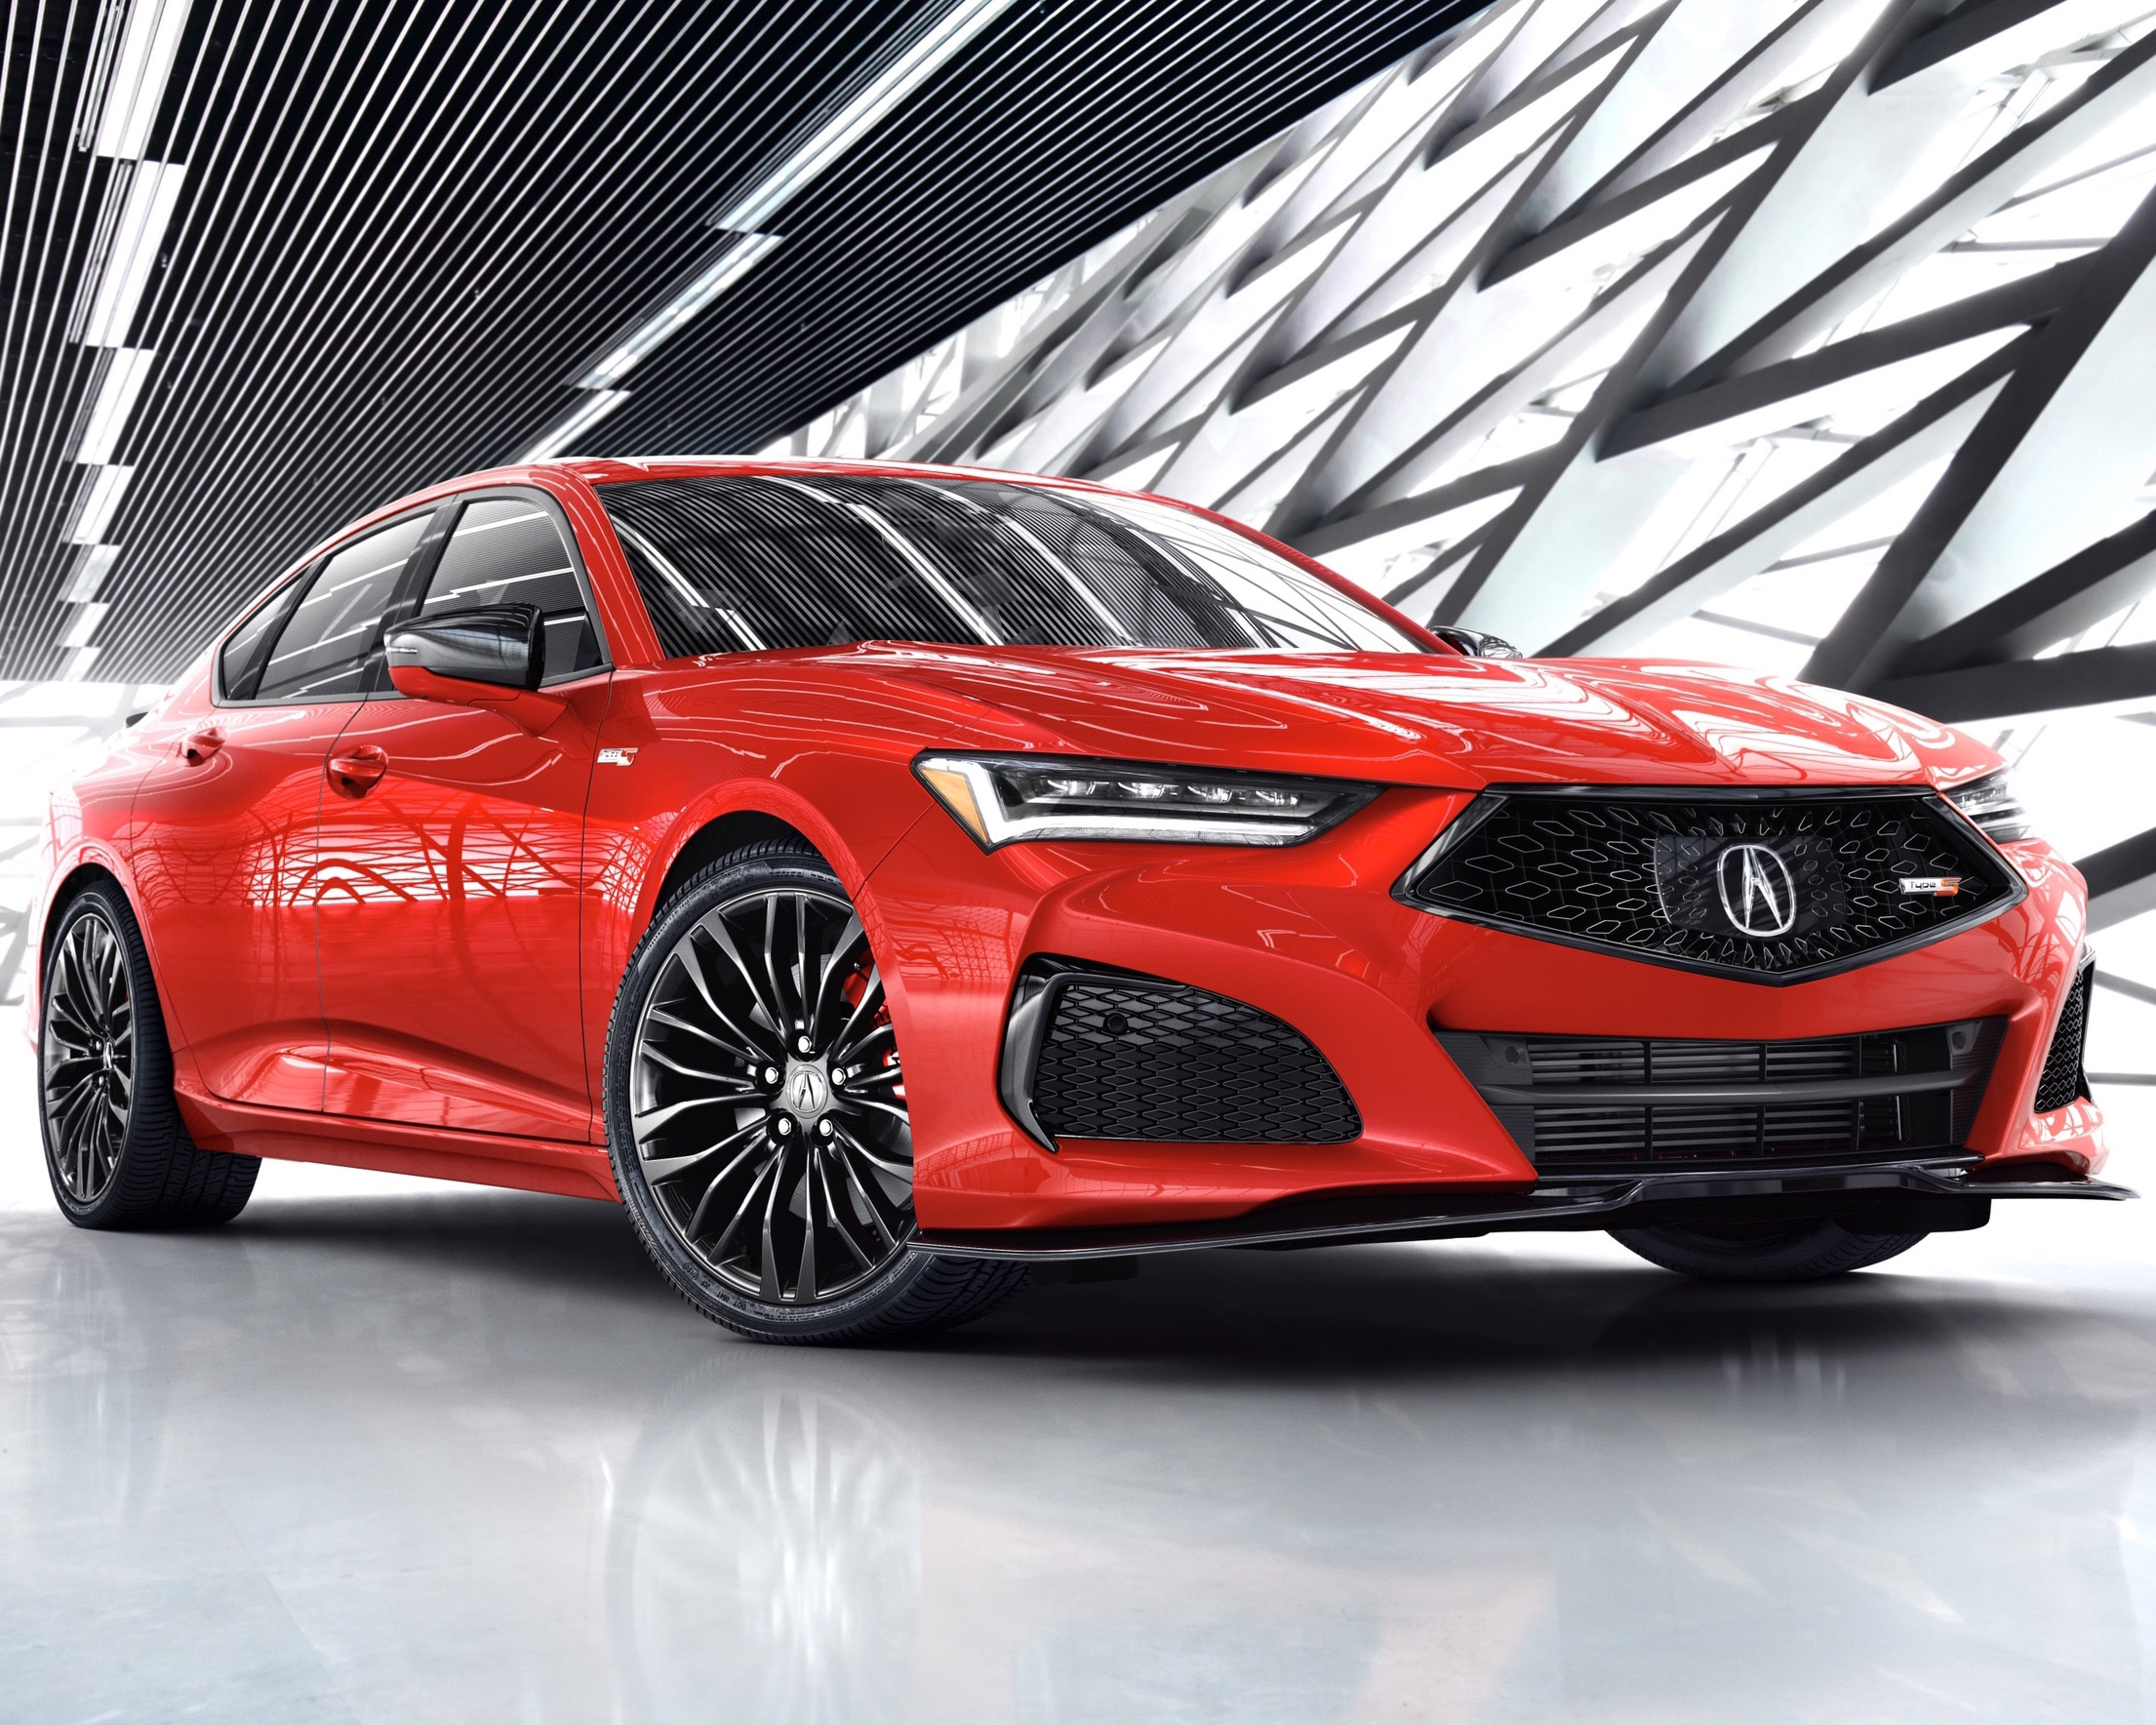 2021 Acura TLX Type S Horsepower Revealed - 355 HP • Hype ...